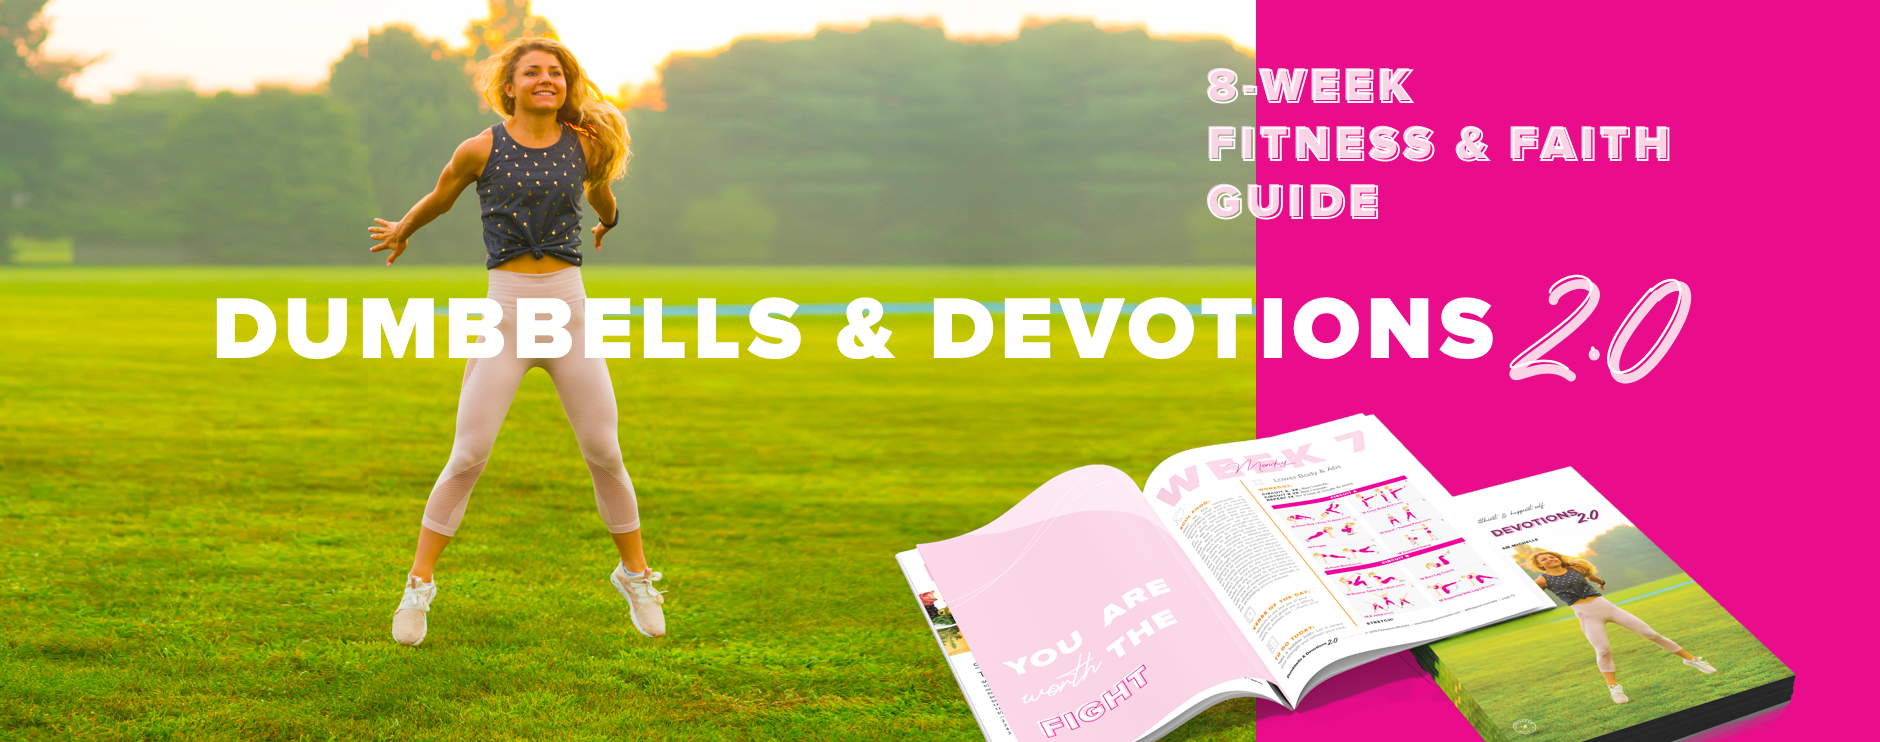 Dumbbells & Devotions 2.0 an 8-week fitness and faith program designed to help women know their worth, get fit, and love themselves.